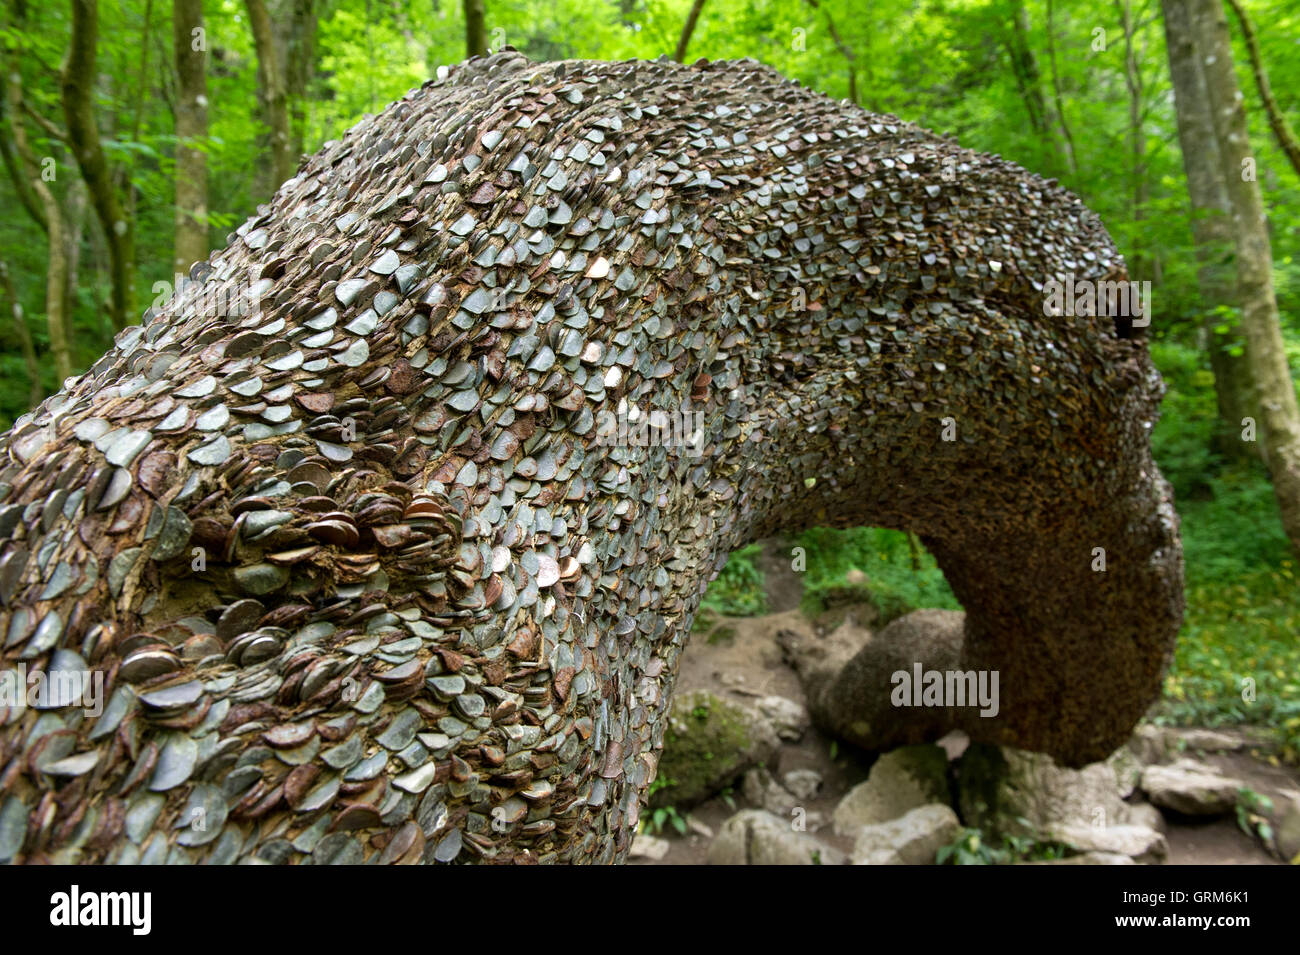 Coins embedded into the Wishing Tree along the Ingleton Waterfall Trail in the Yorkshire Dales - Stock Image